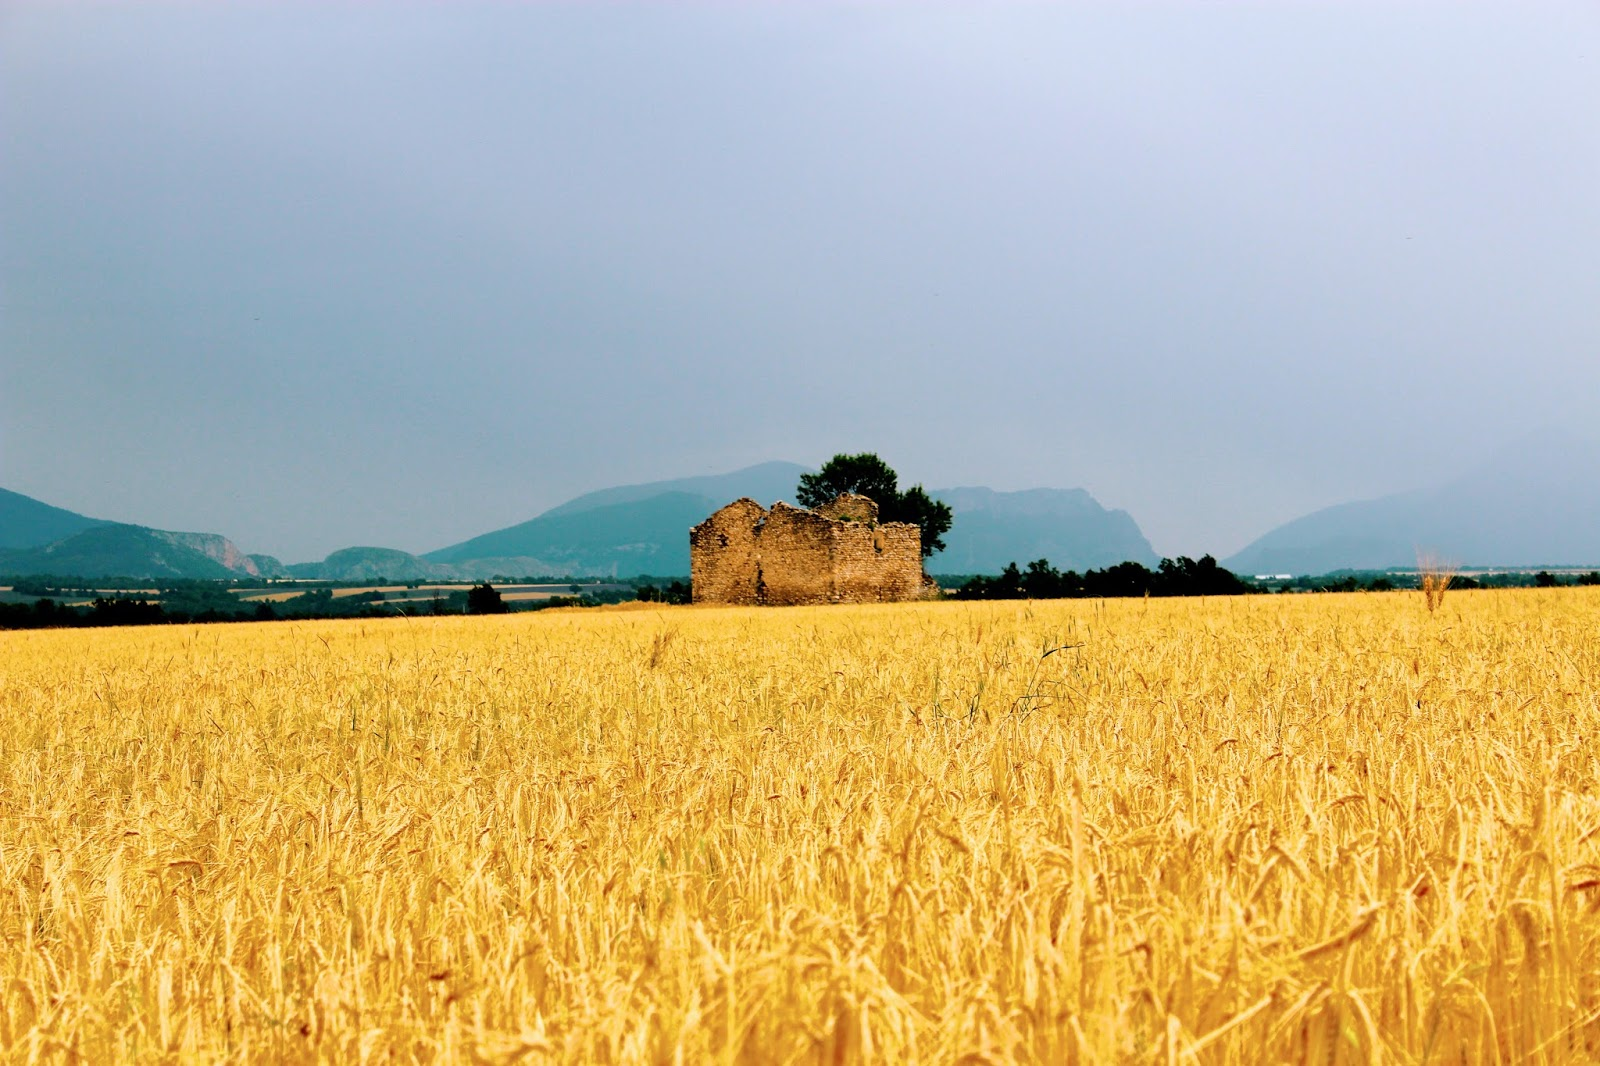 wheat field   barns/farms   Pinterest   Stables, Wheat fields and ...